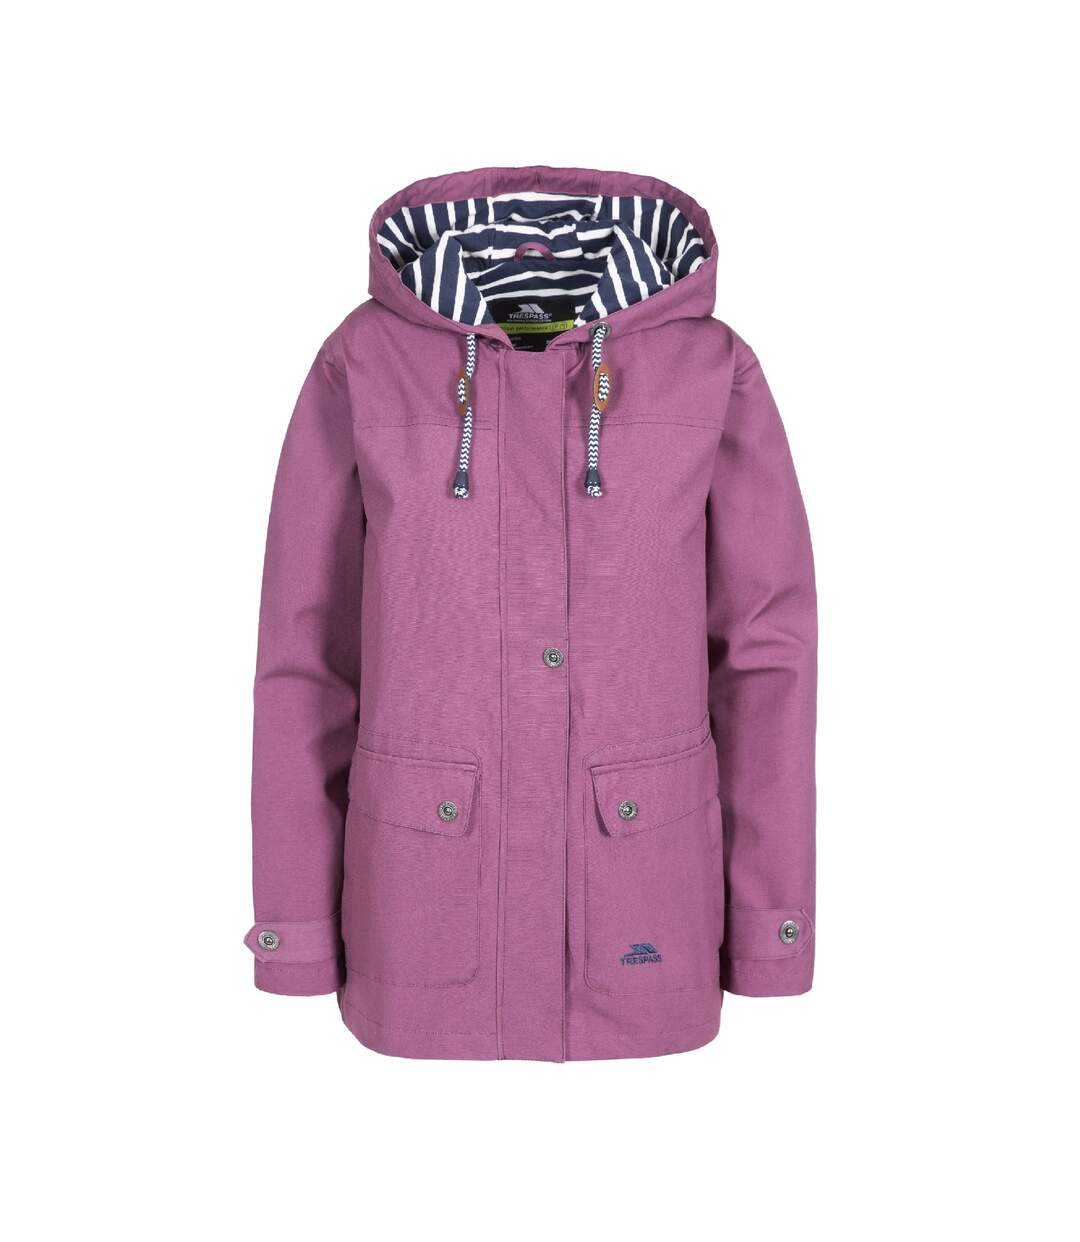 Trespass Womens/Ladies Seawater Waterproof Jacket (Clover) - UTTP3314